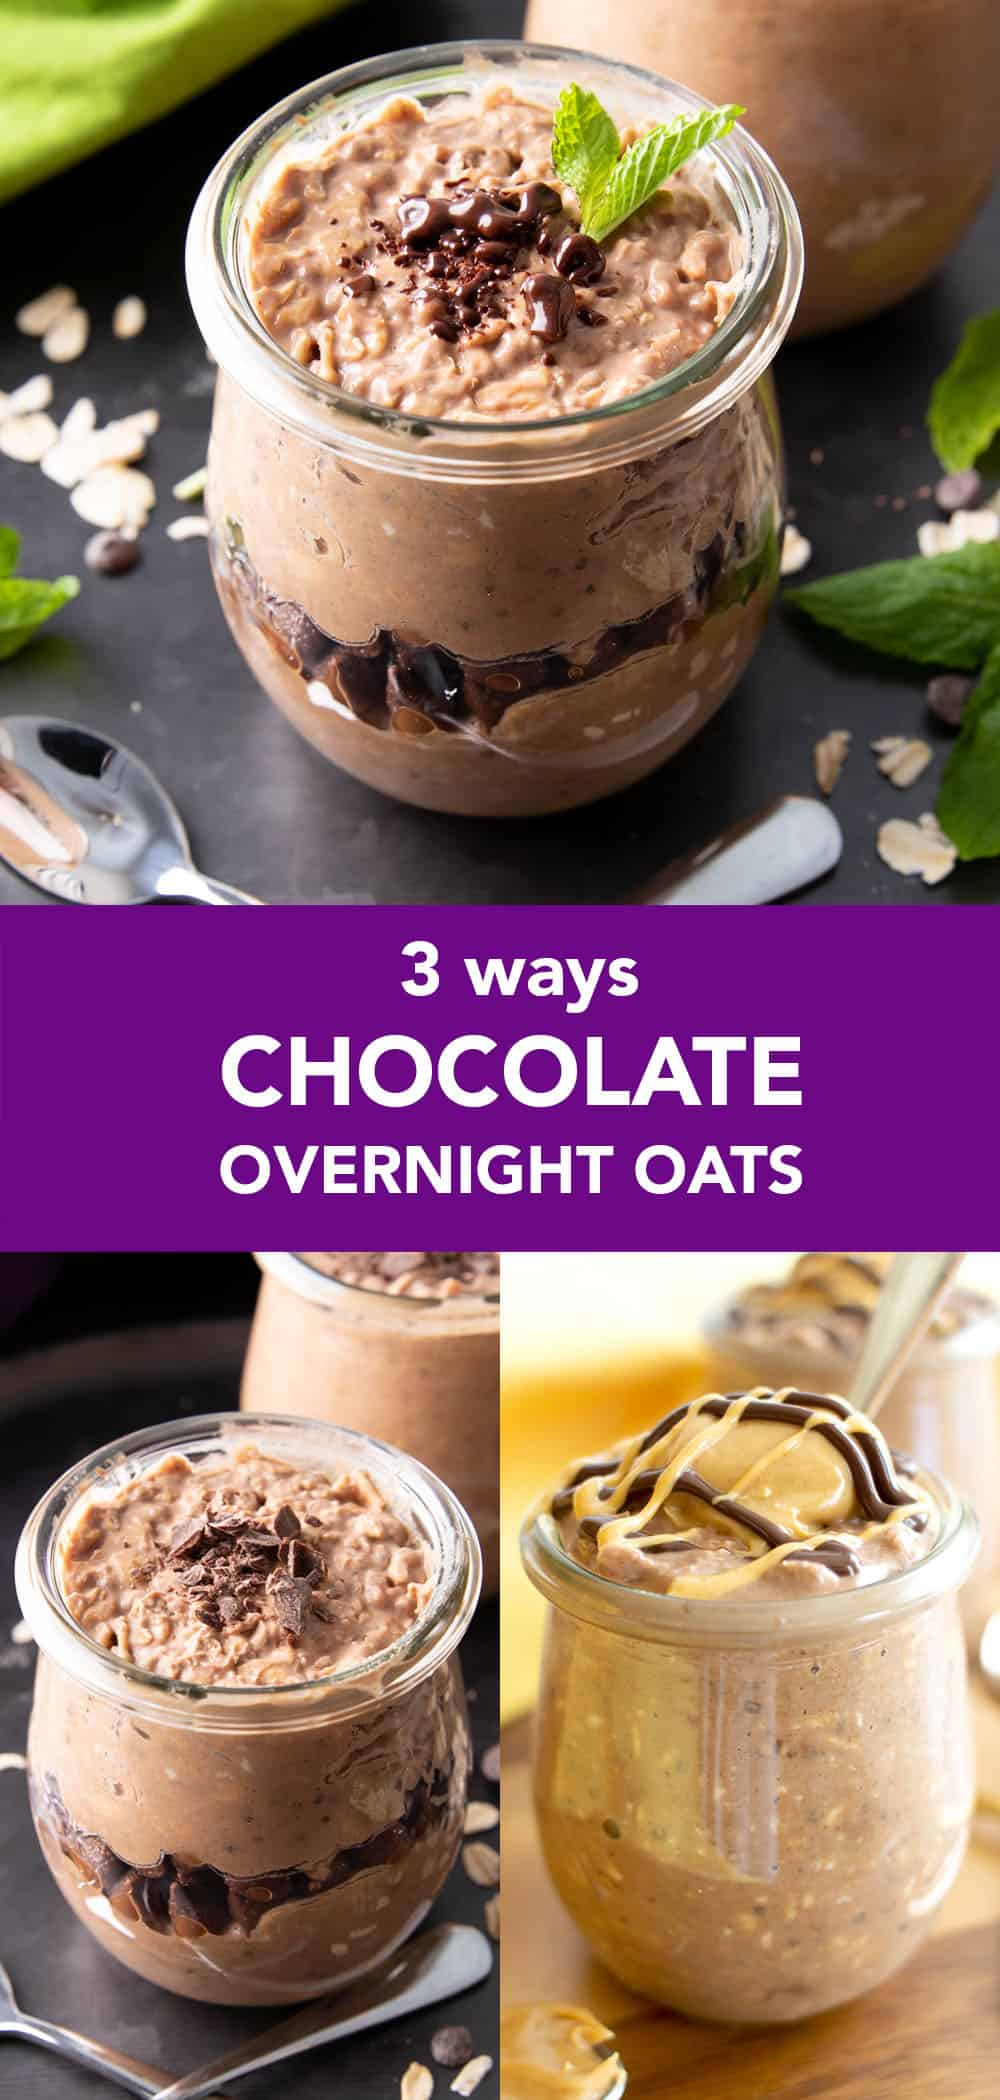 Chocolate Overnight Oats – 3 Ways: 3 delicious 'n easy ways to make chocolate overnight oats! Including: chocolate peanut butter overnight oats, chocolate overnight oats and a secret new recipe! #OvernightOats #Chocolate #OvernightOatmeal #ChocolateOvernightOats | Recipe at BeamingBaker.com